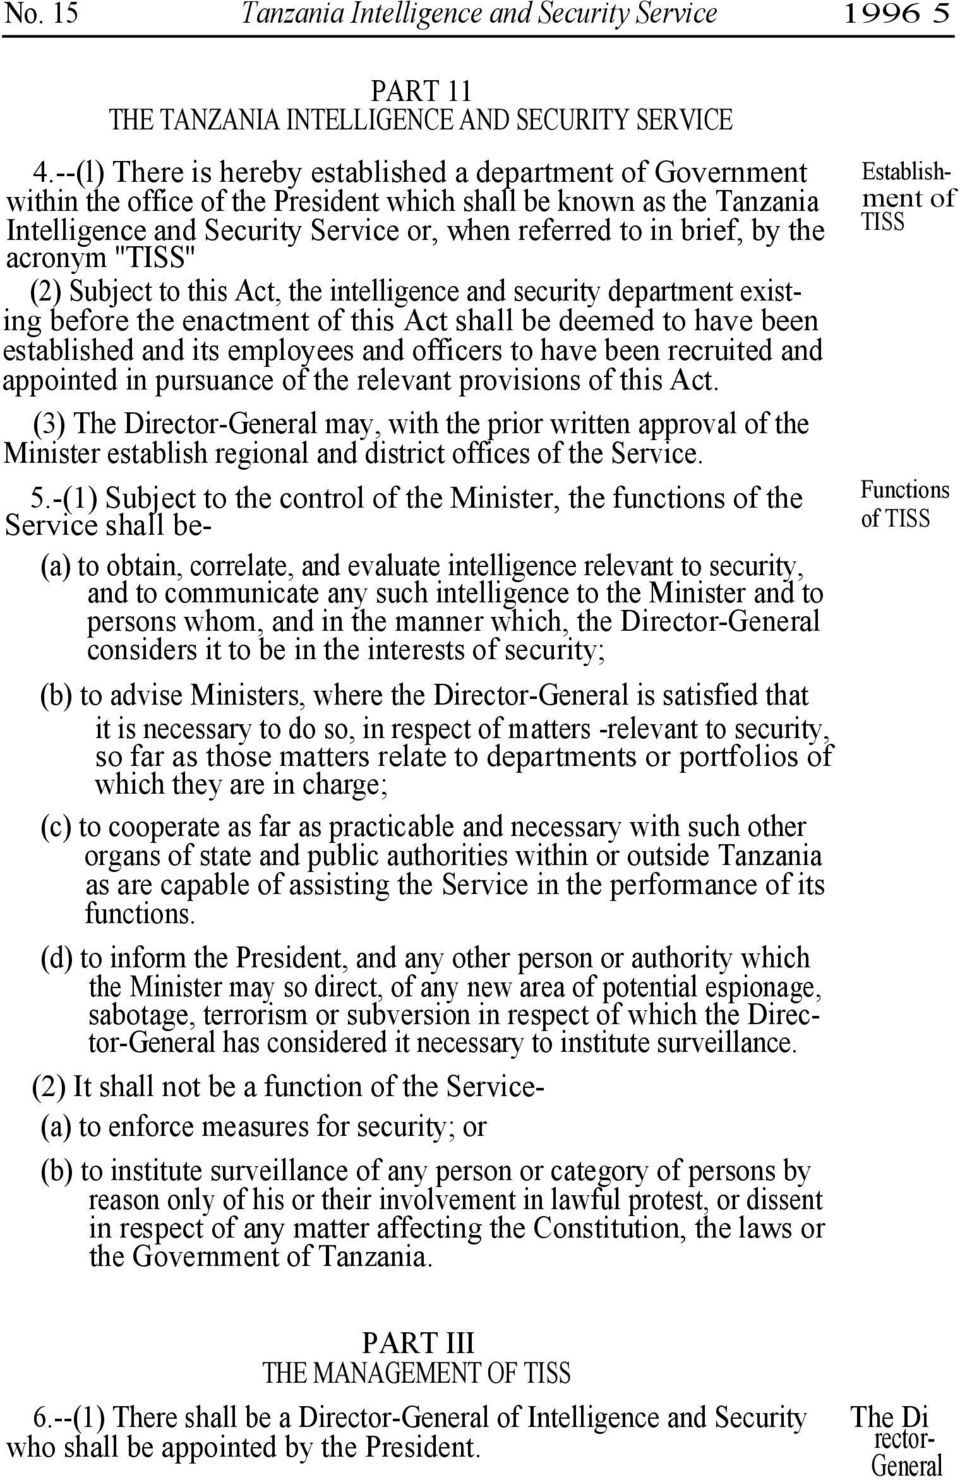 by the acronym ''TISS'' (2) Subject to this Act, the intelligence and security department existing before the enactment of this Act shall be deemed to have been established and its employees and